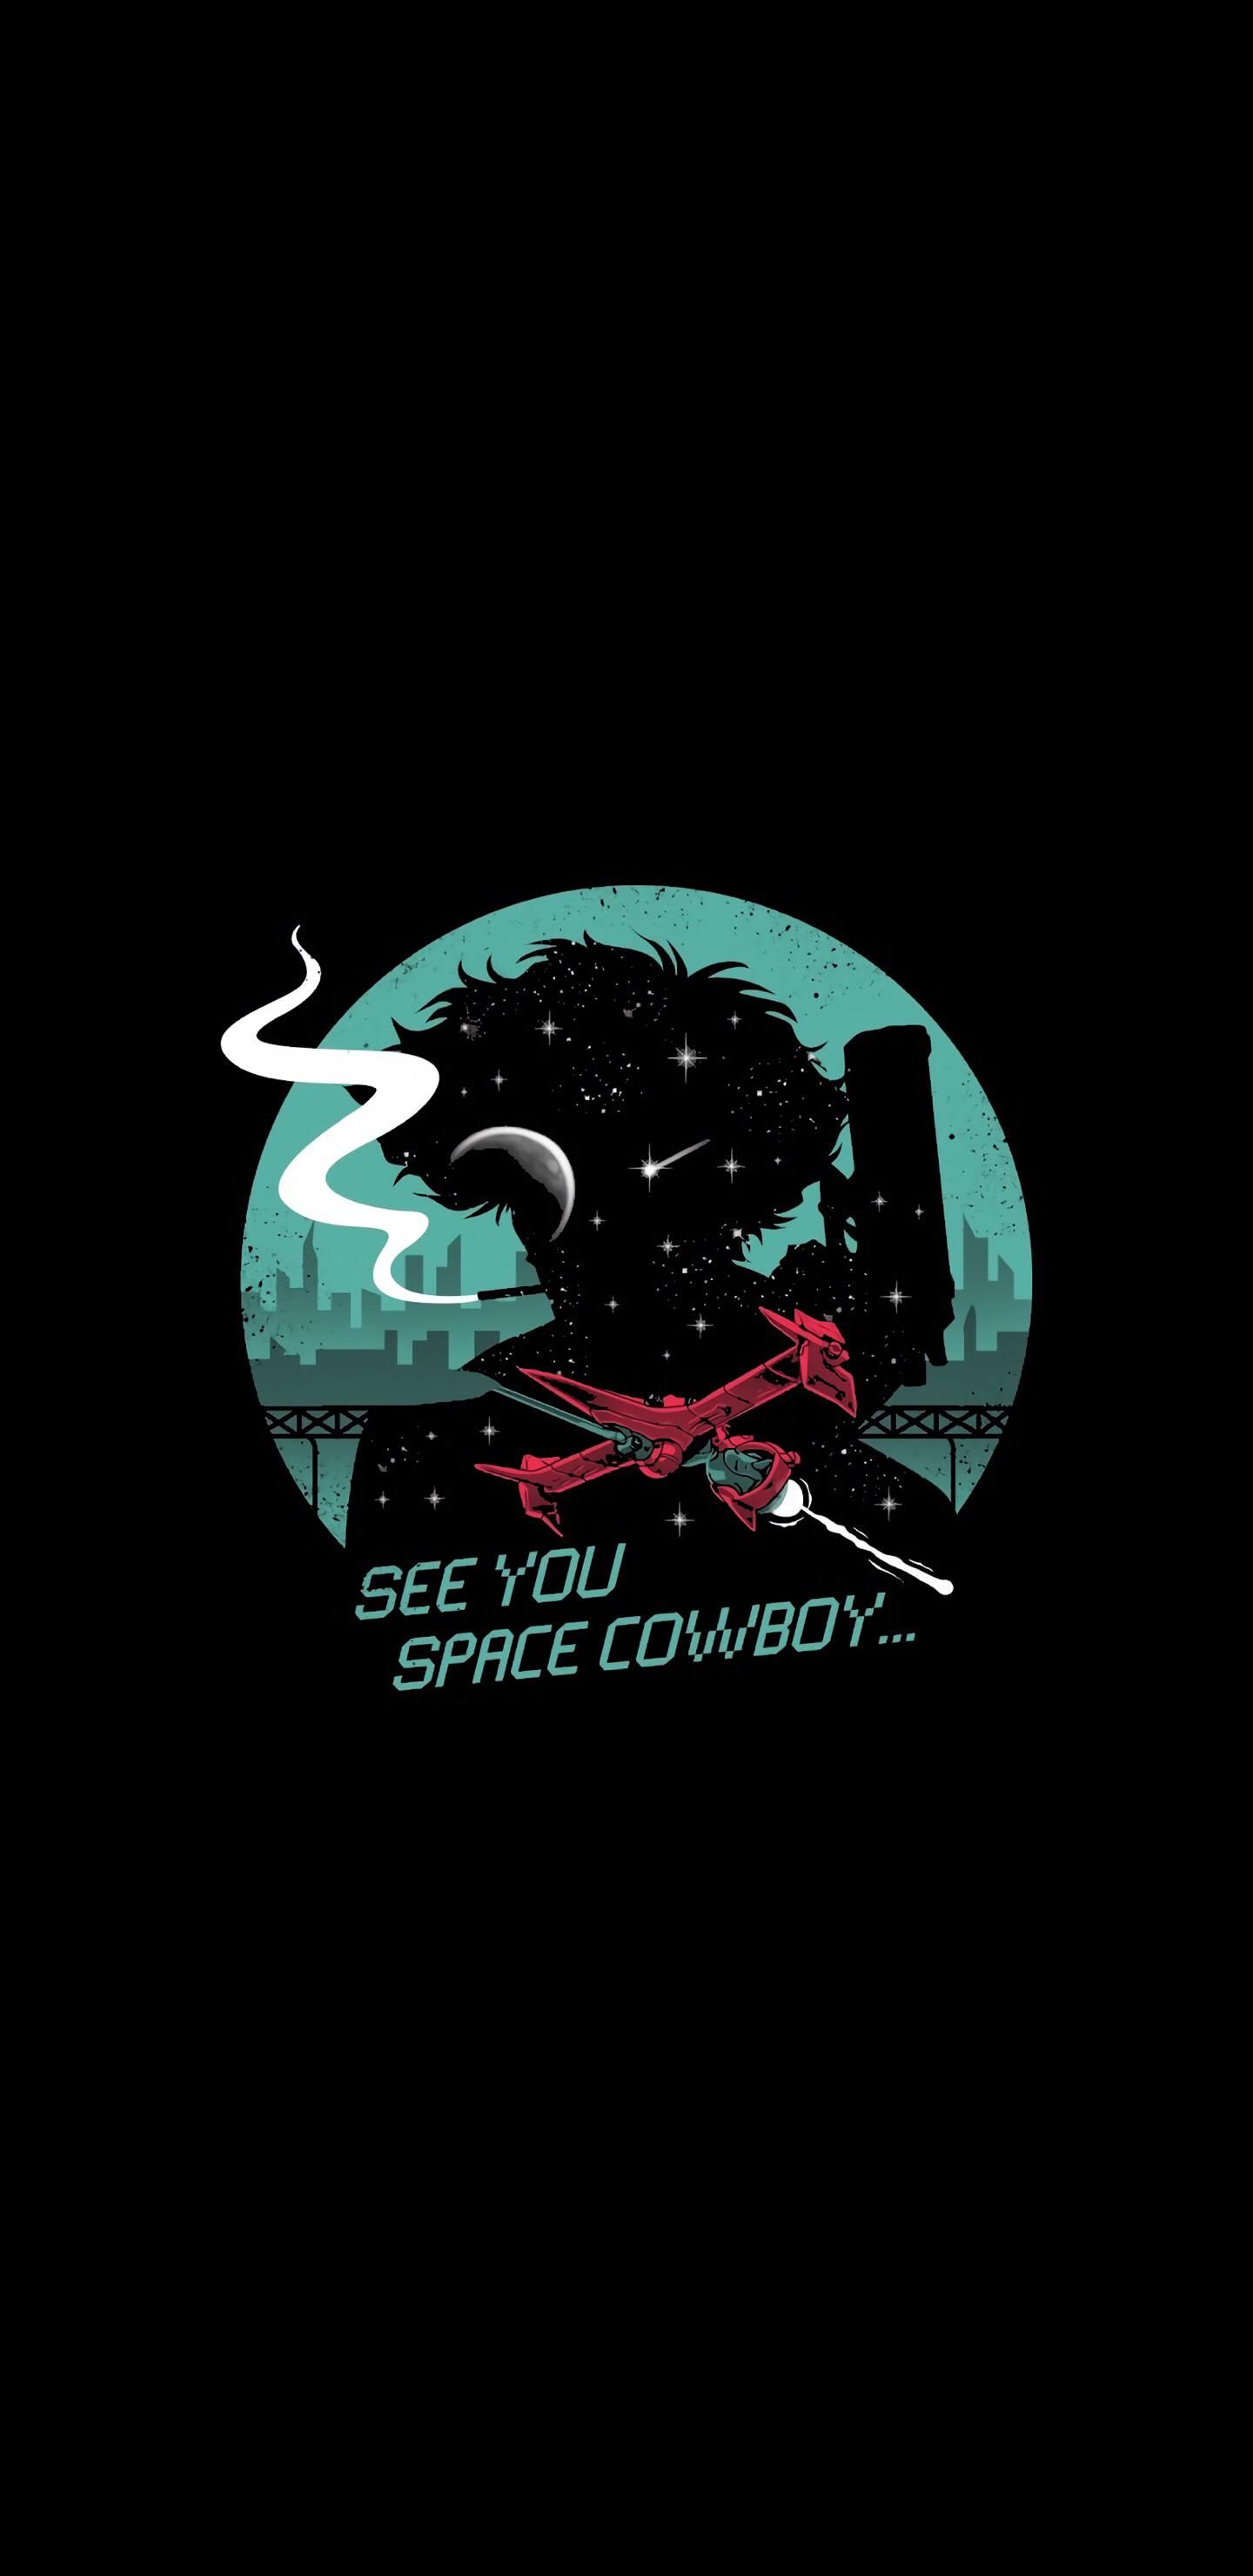 See you space cowboy…